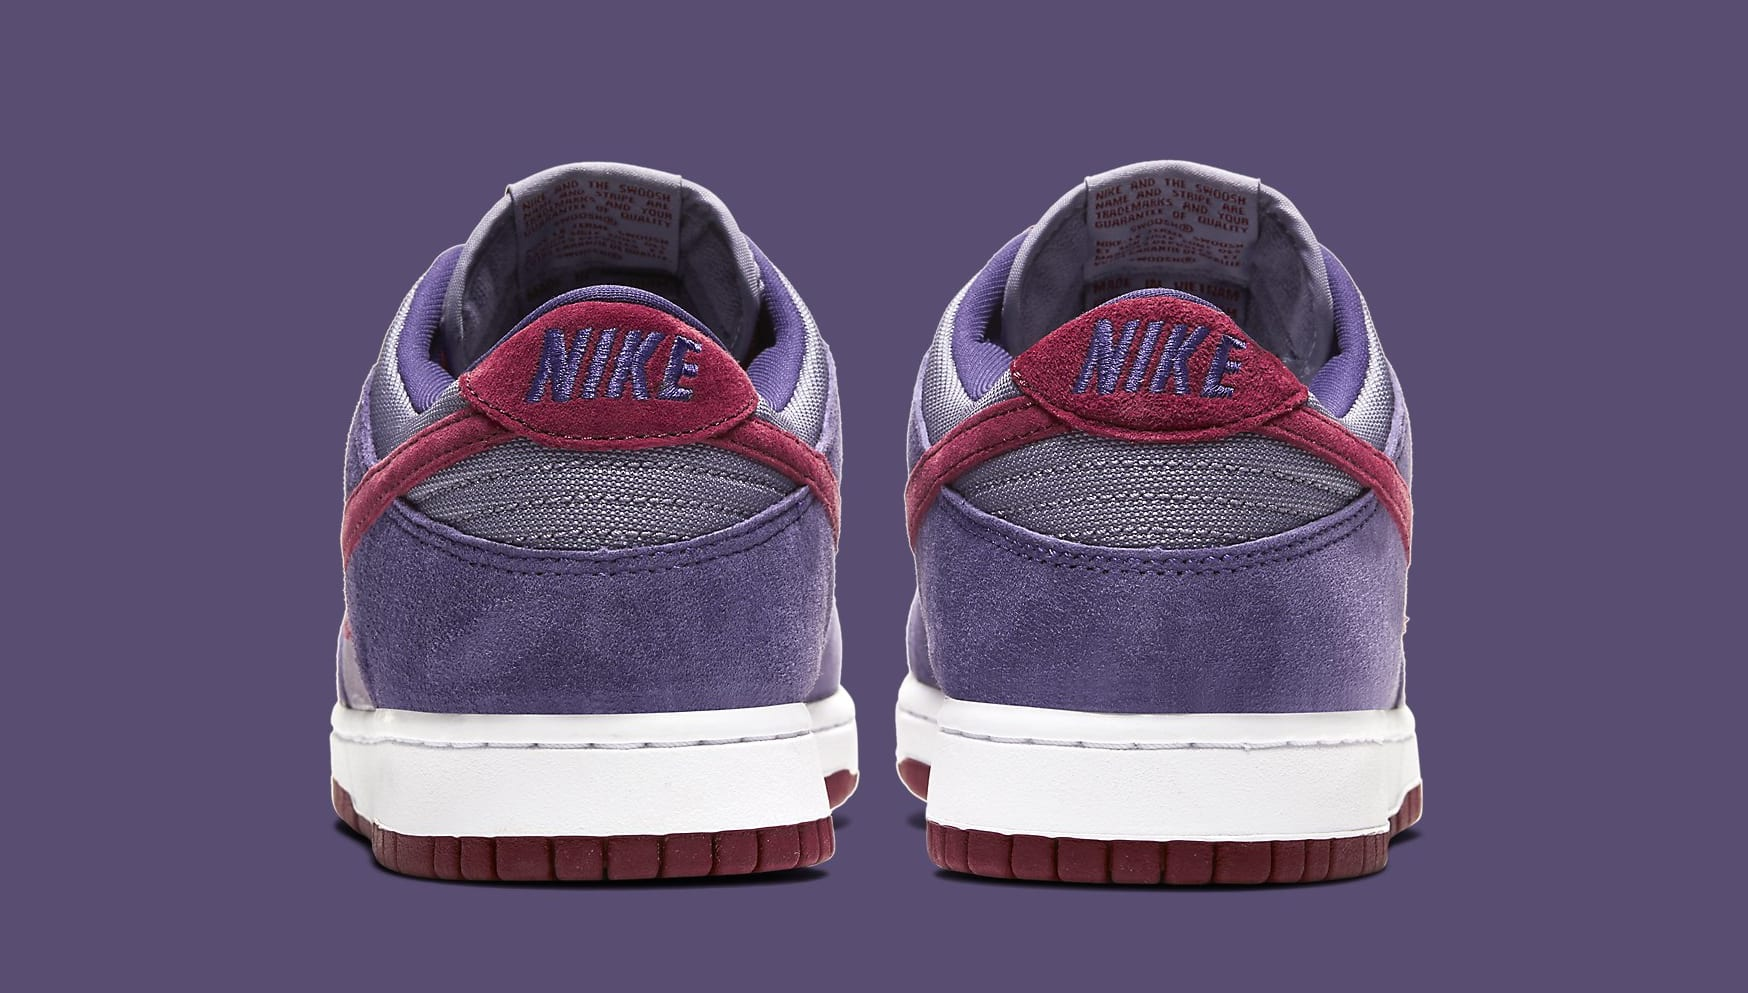 nike-dunk-low-plum-2020-cu1726-500-heel